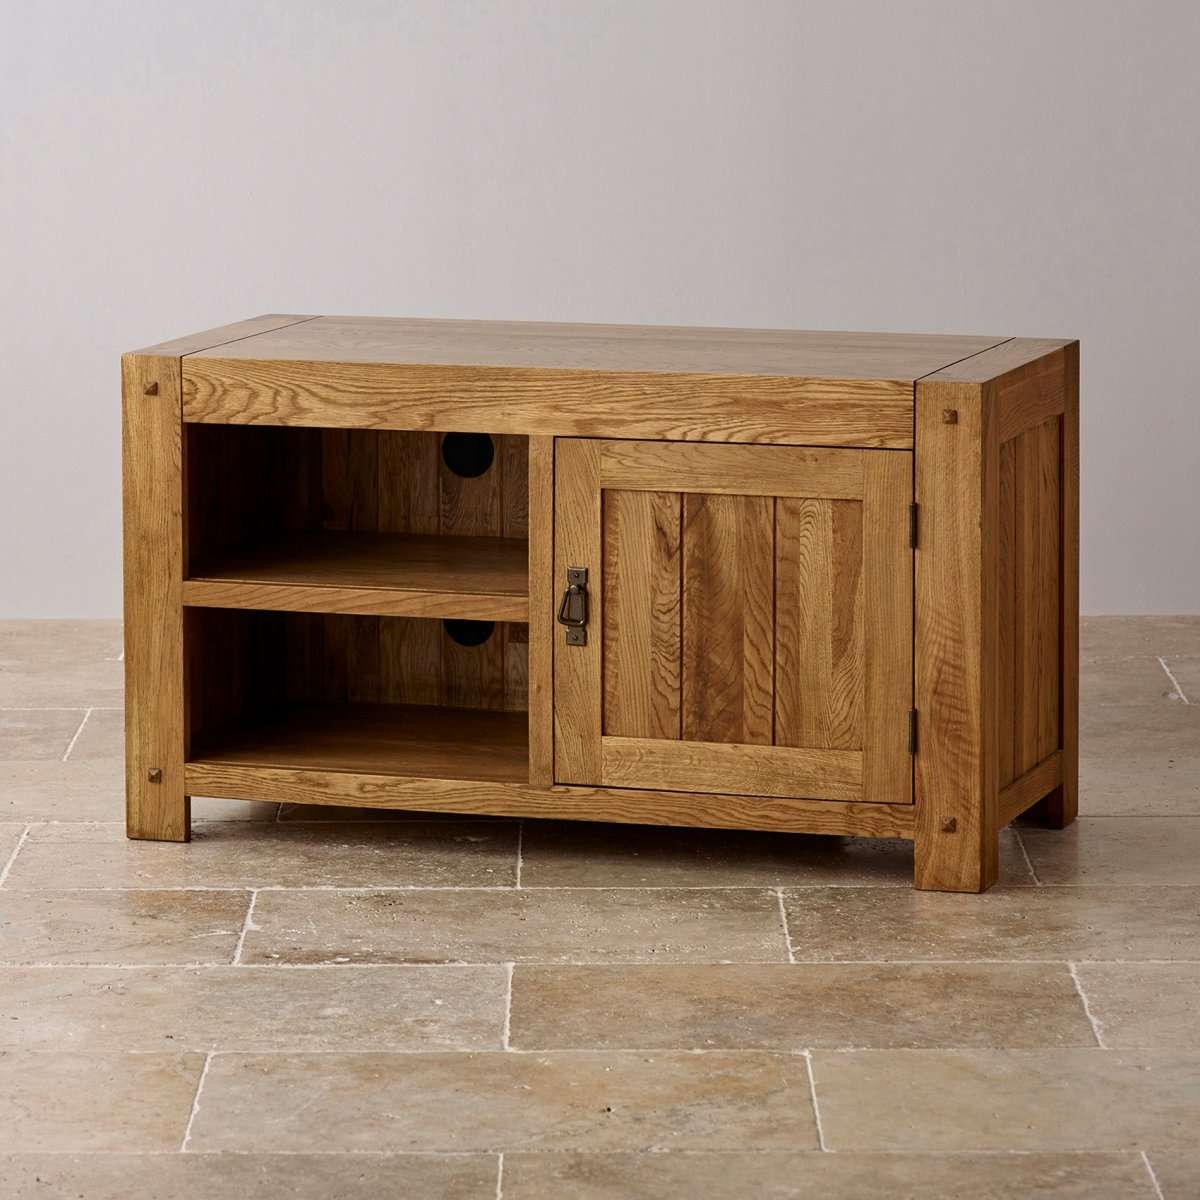 Bare Wood Tv Stand : Innovative Designs Oak Tv Console – Marku With Hard Wood Tv Stands (View 2 of 15)